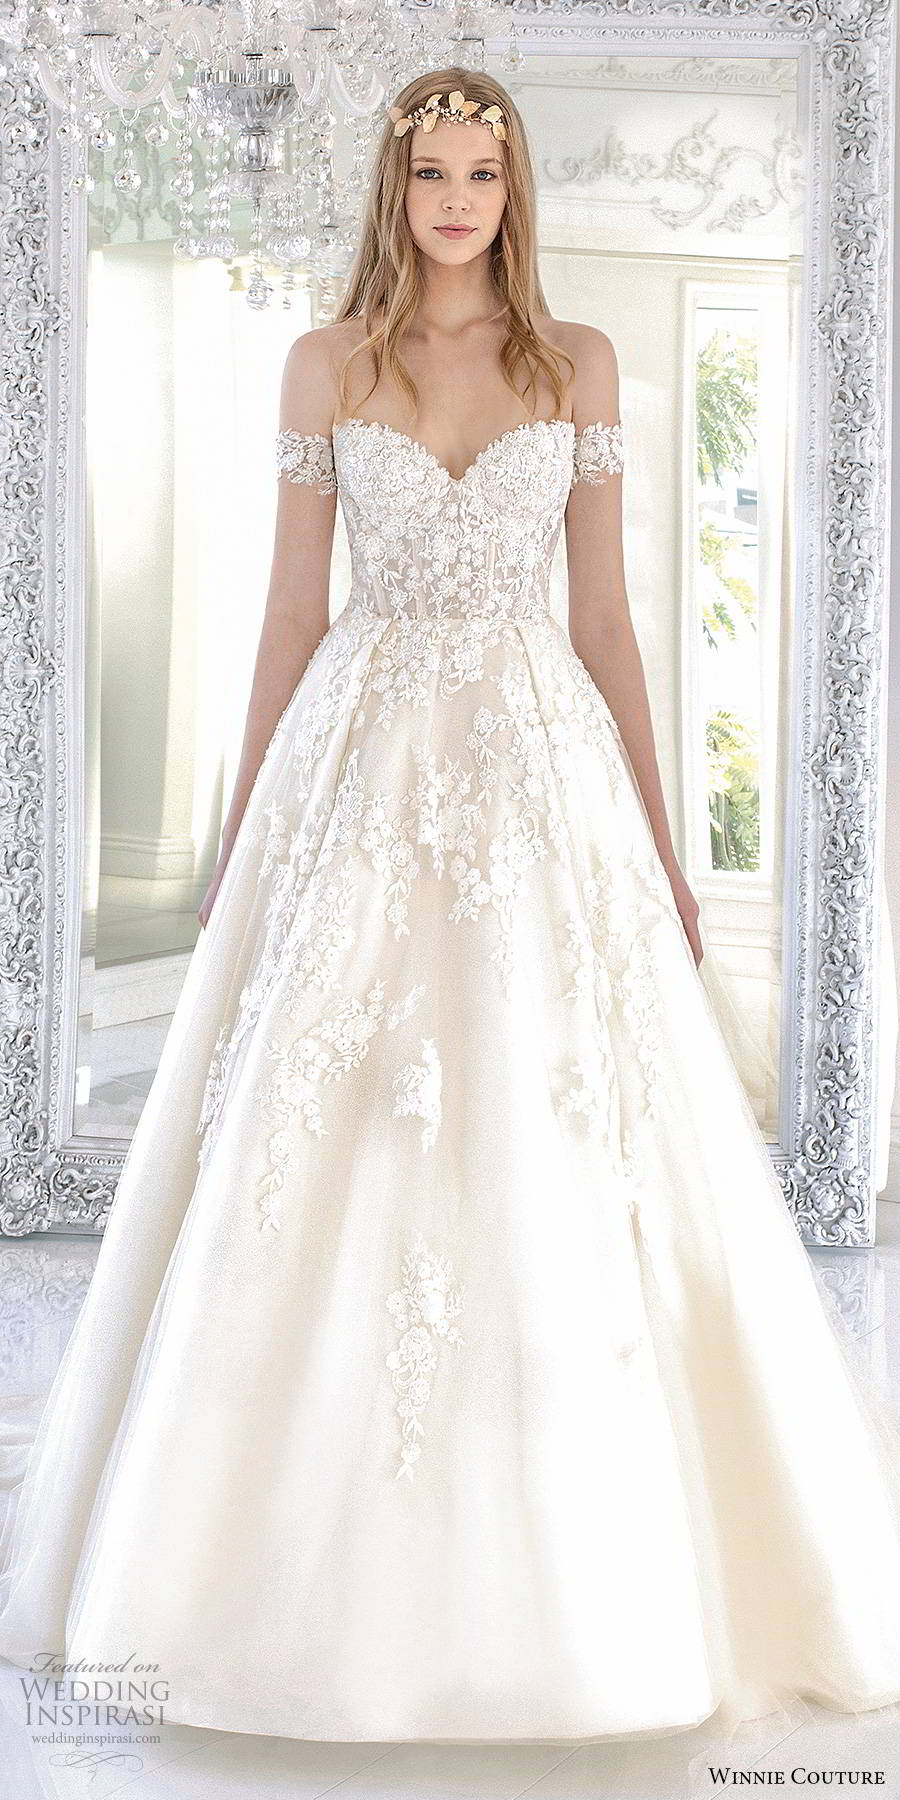 winnie couture 2019 bridal off shoulder sweetheart neckline fully embellished lace romantic a line ball gown wedding dress chapel train (13) mv